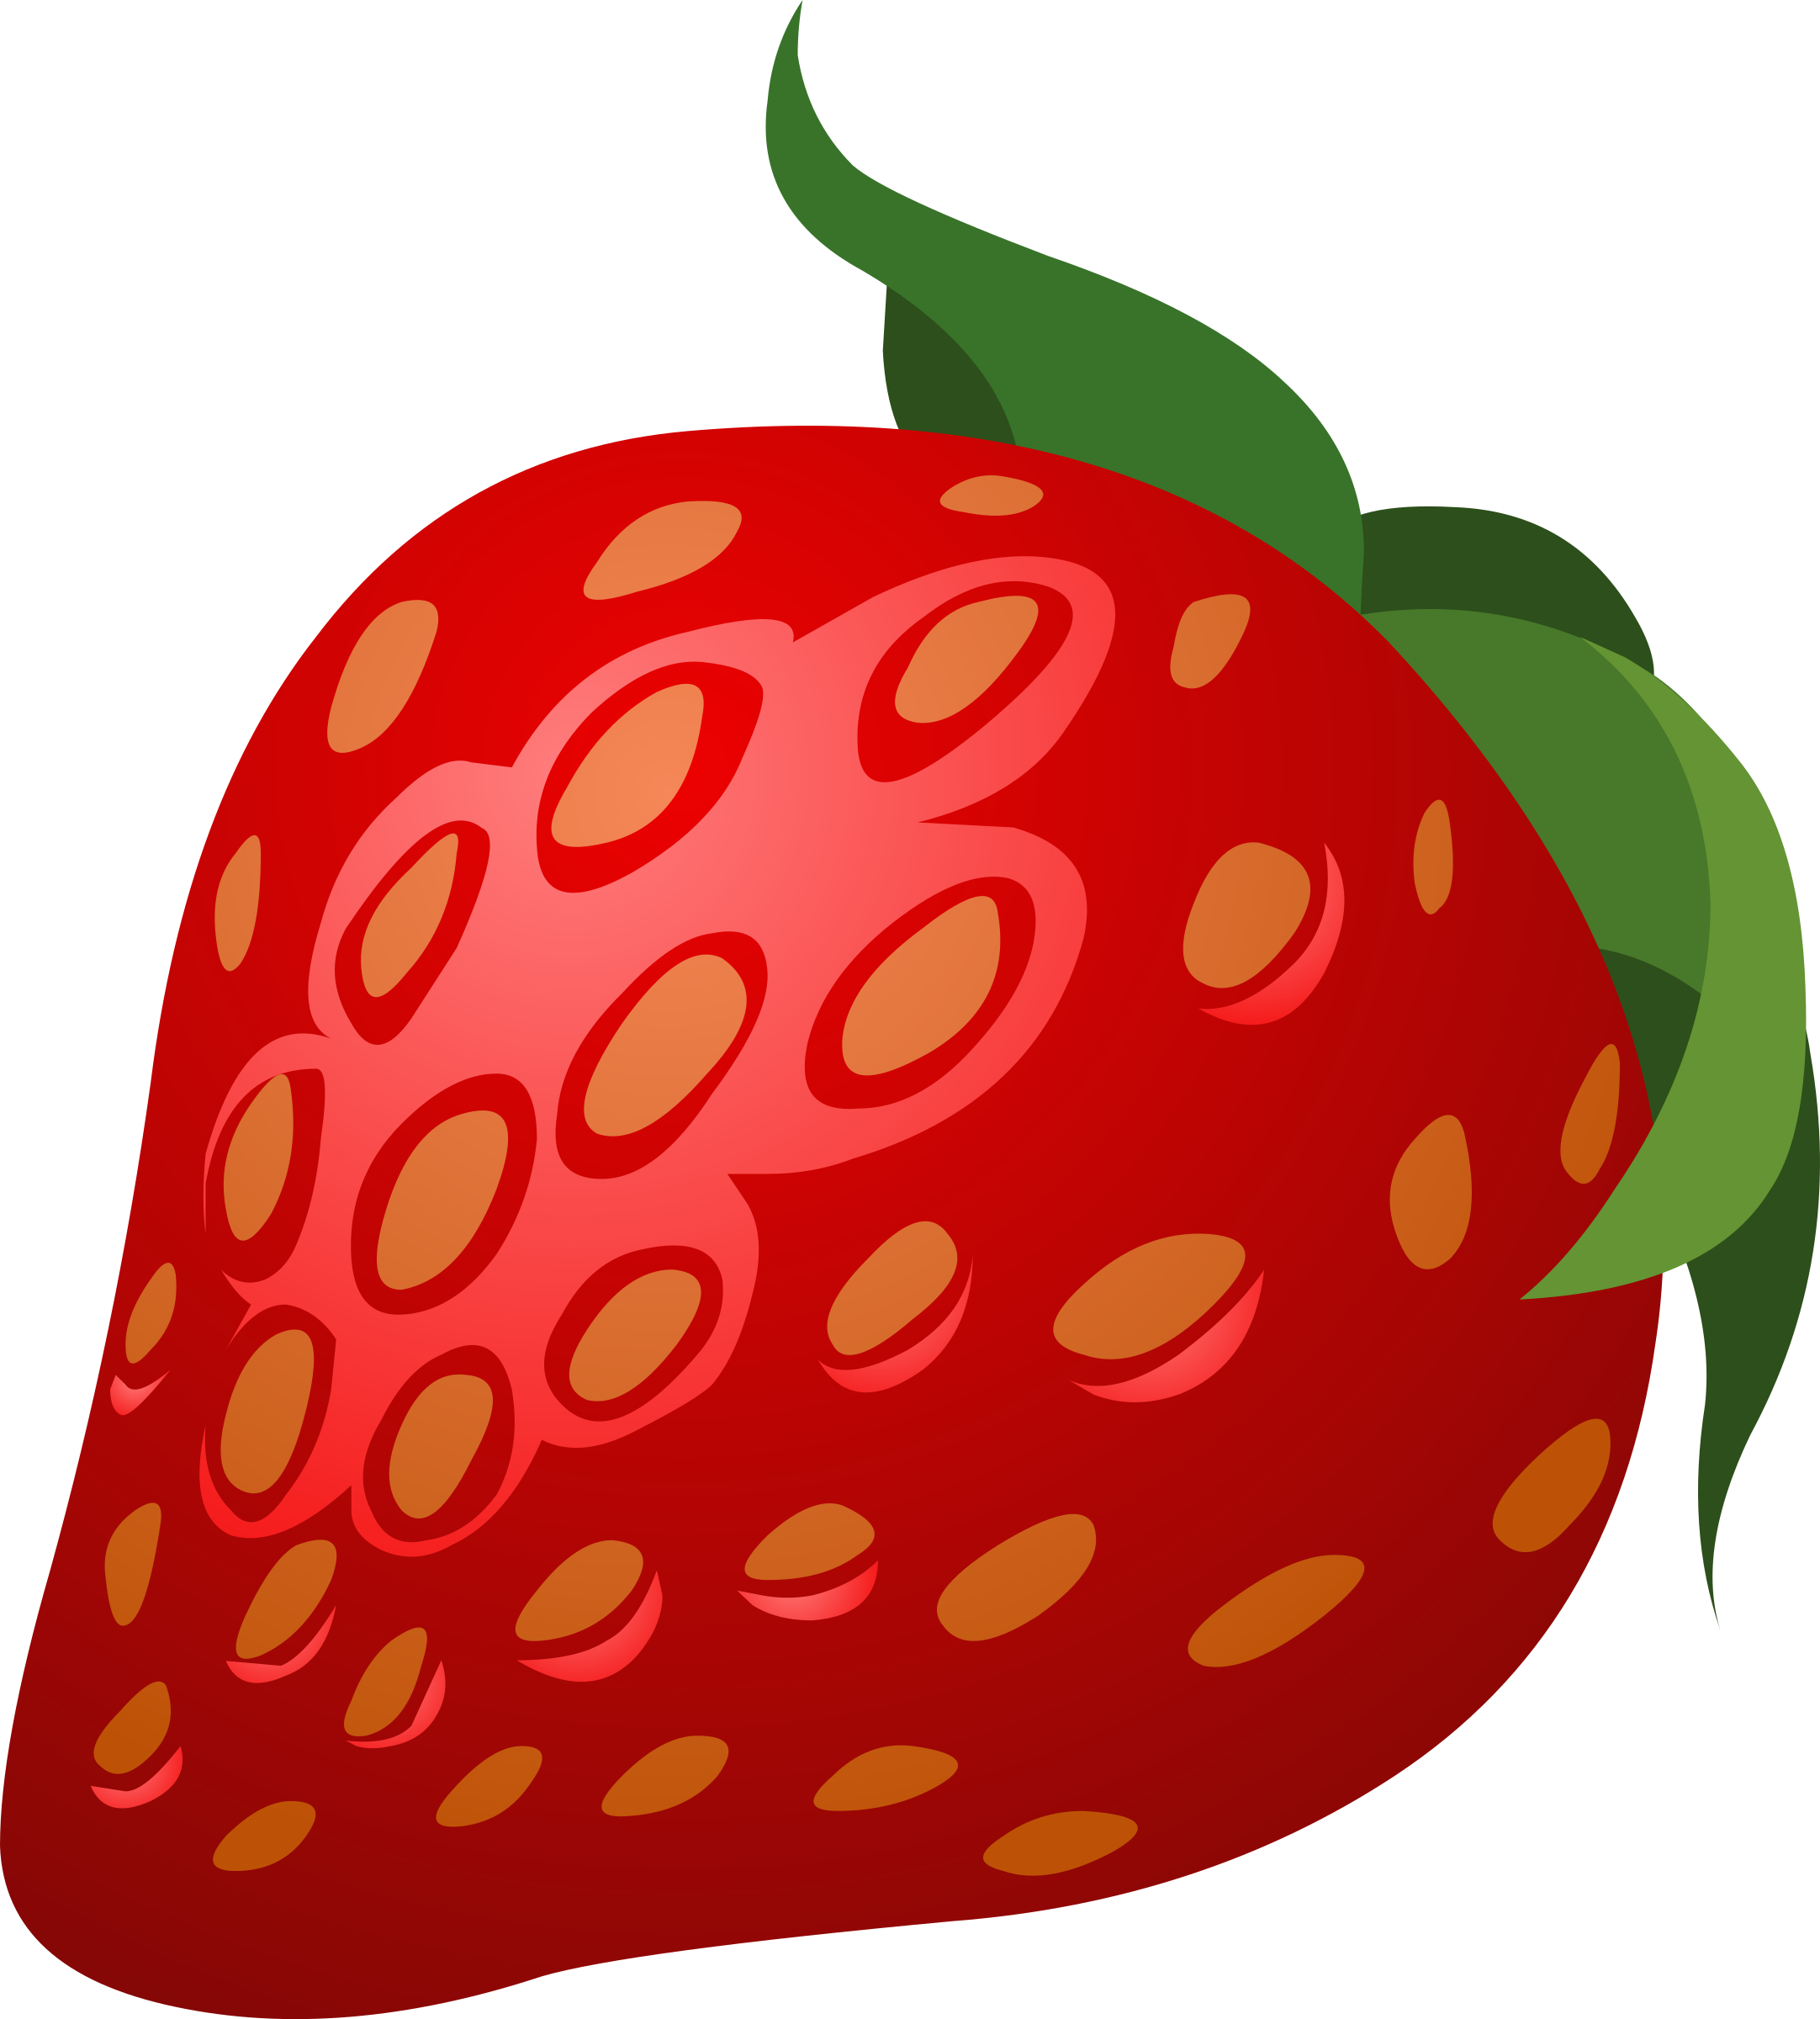 Drinks clipart unhealthy food. Strawberry big image png